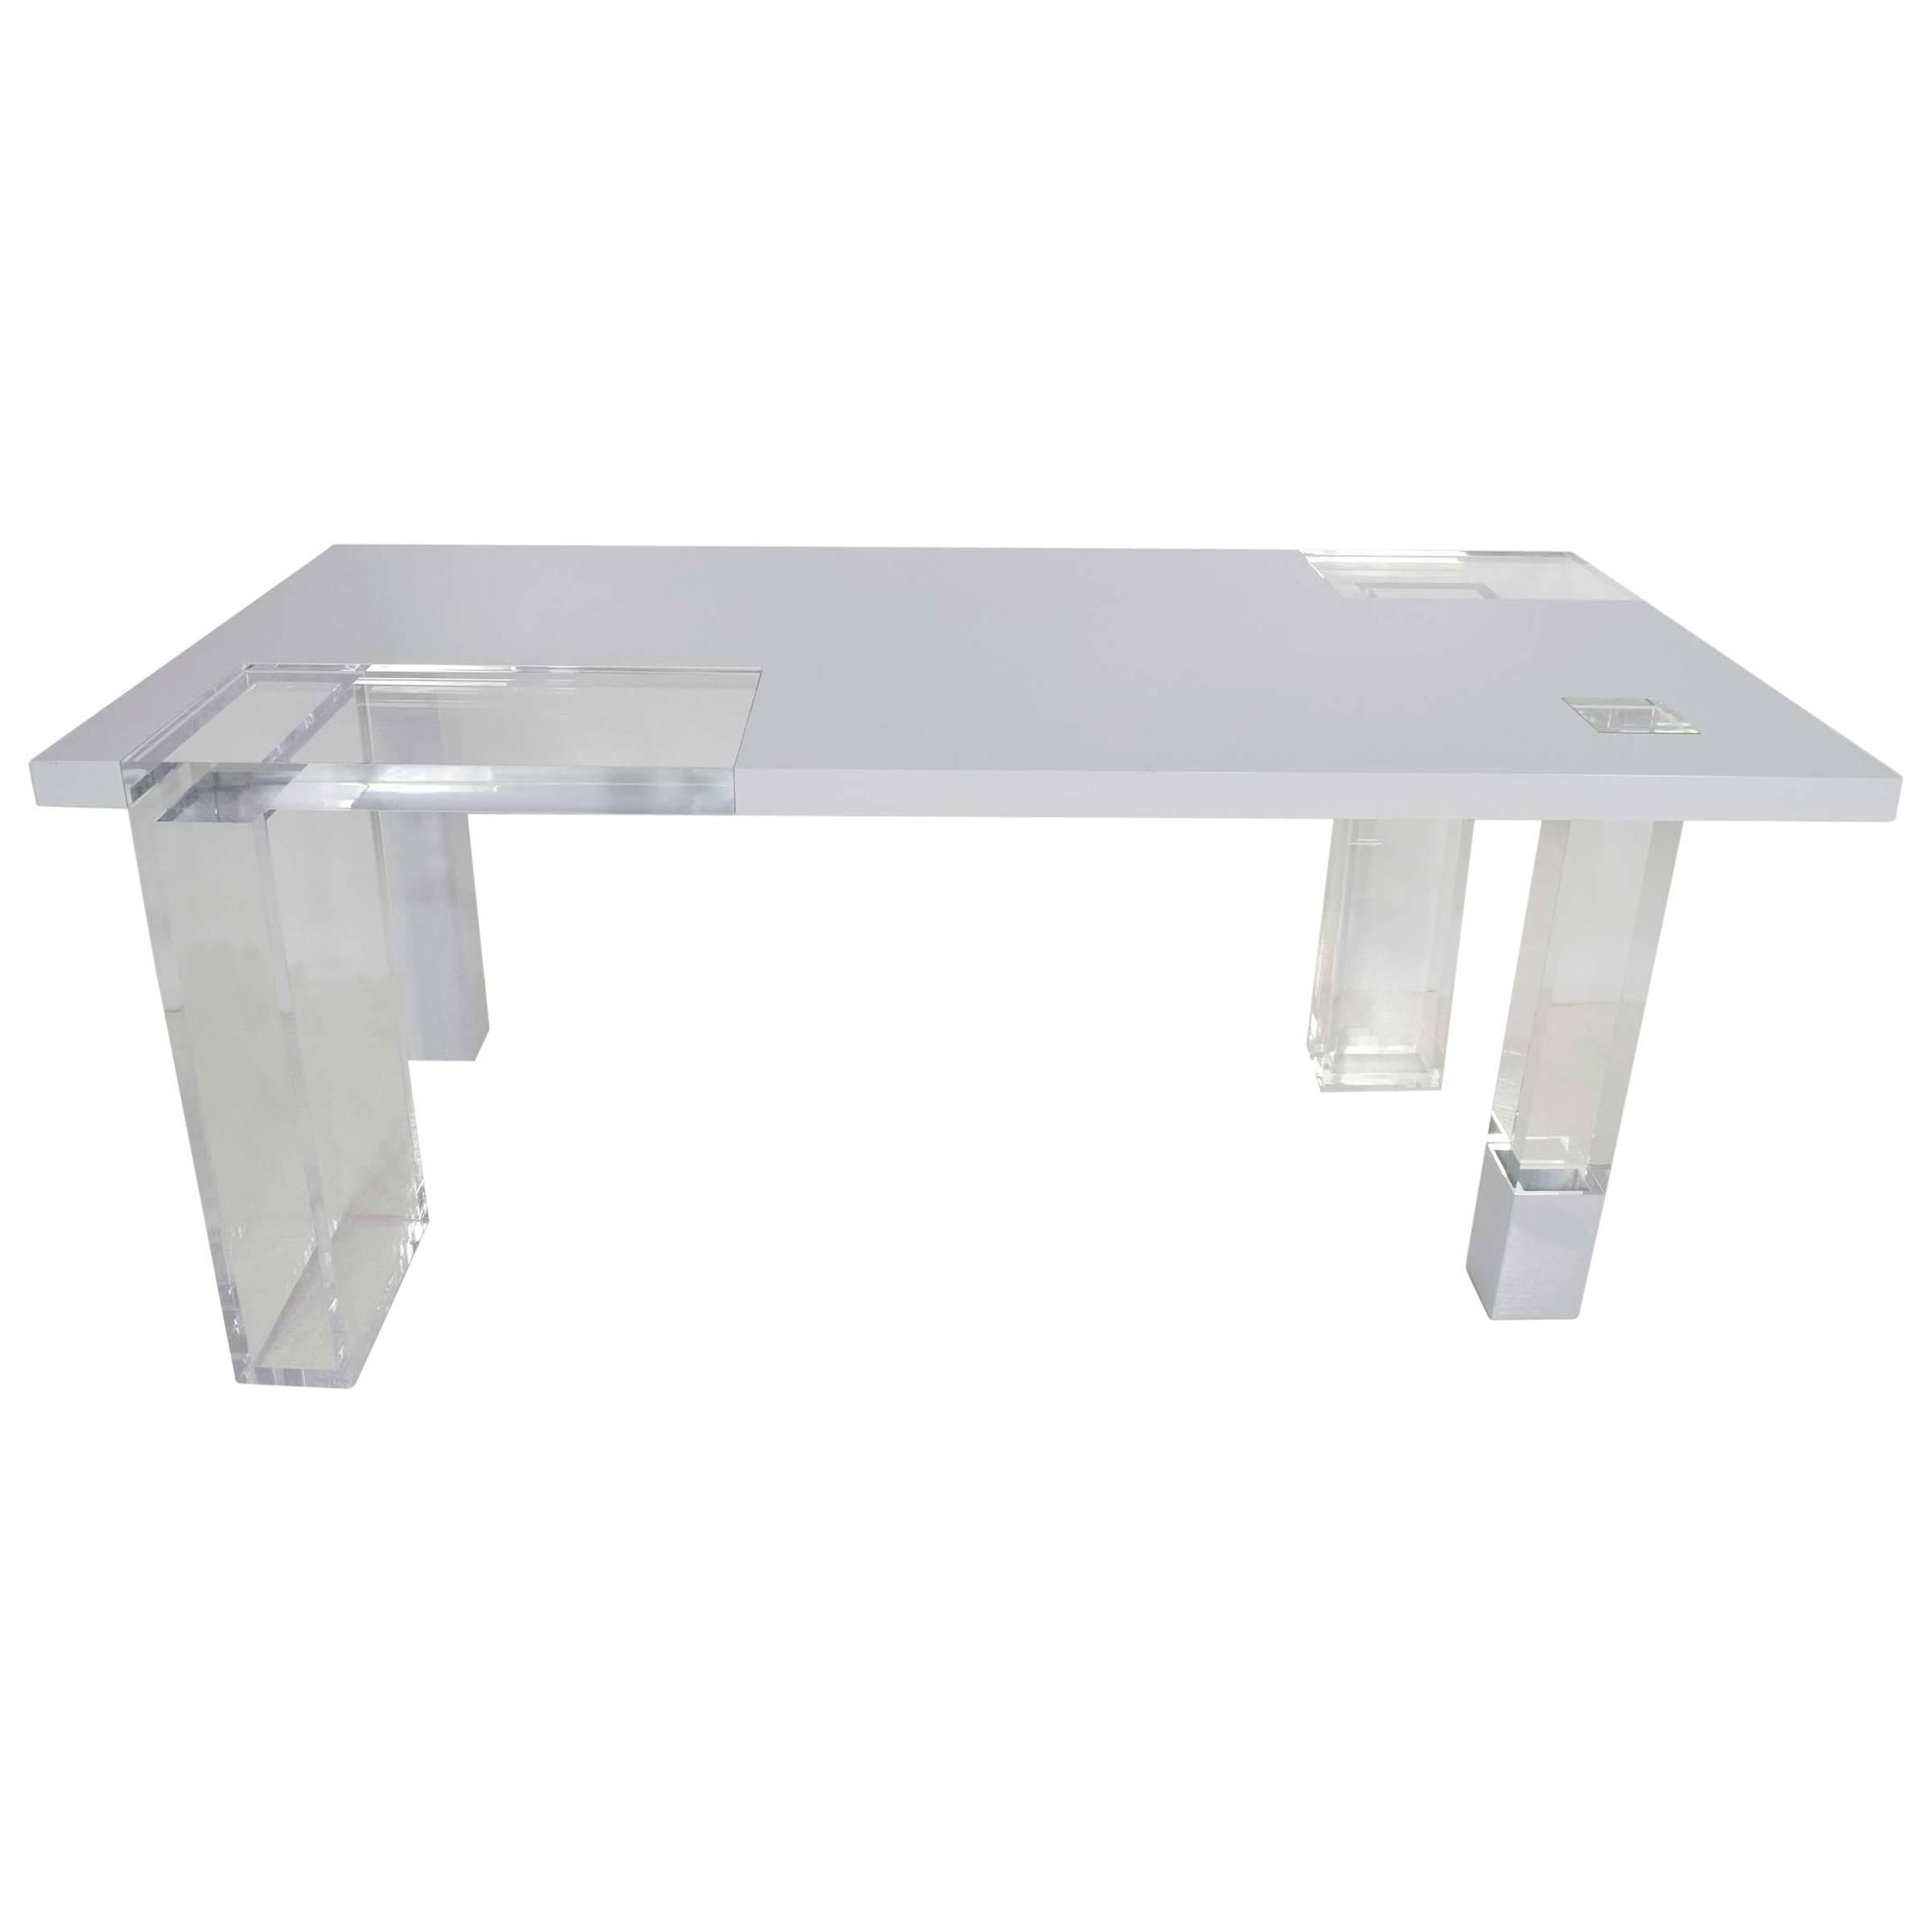 Unique Signed Lucite and White Lacquer Desk or Table